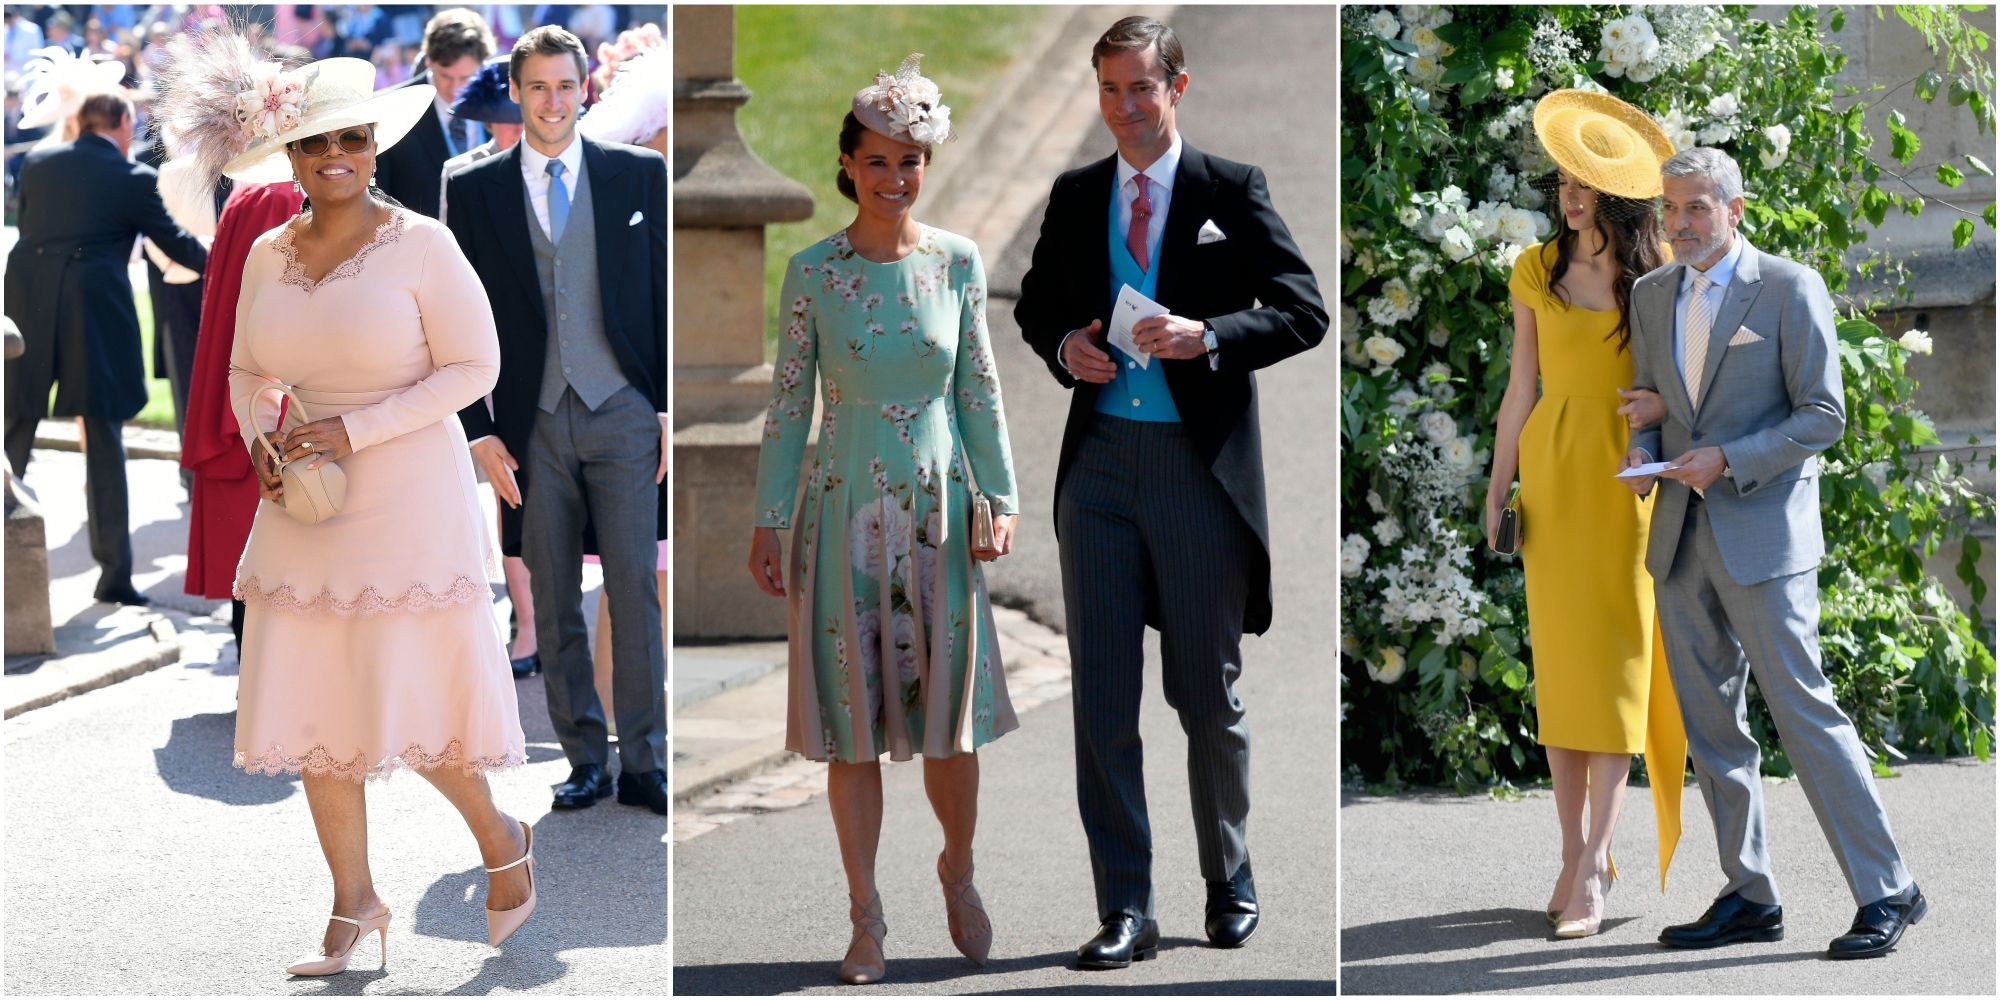 20b1d1bbd7d Royal Wedding  Every Stunning Outfit From The A-List Guests